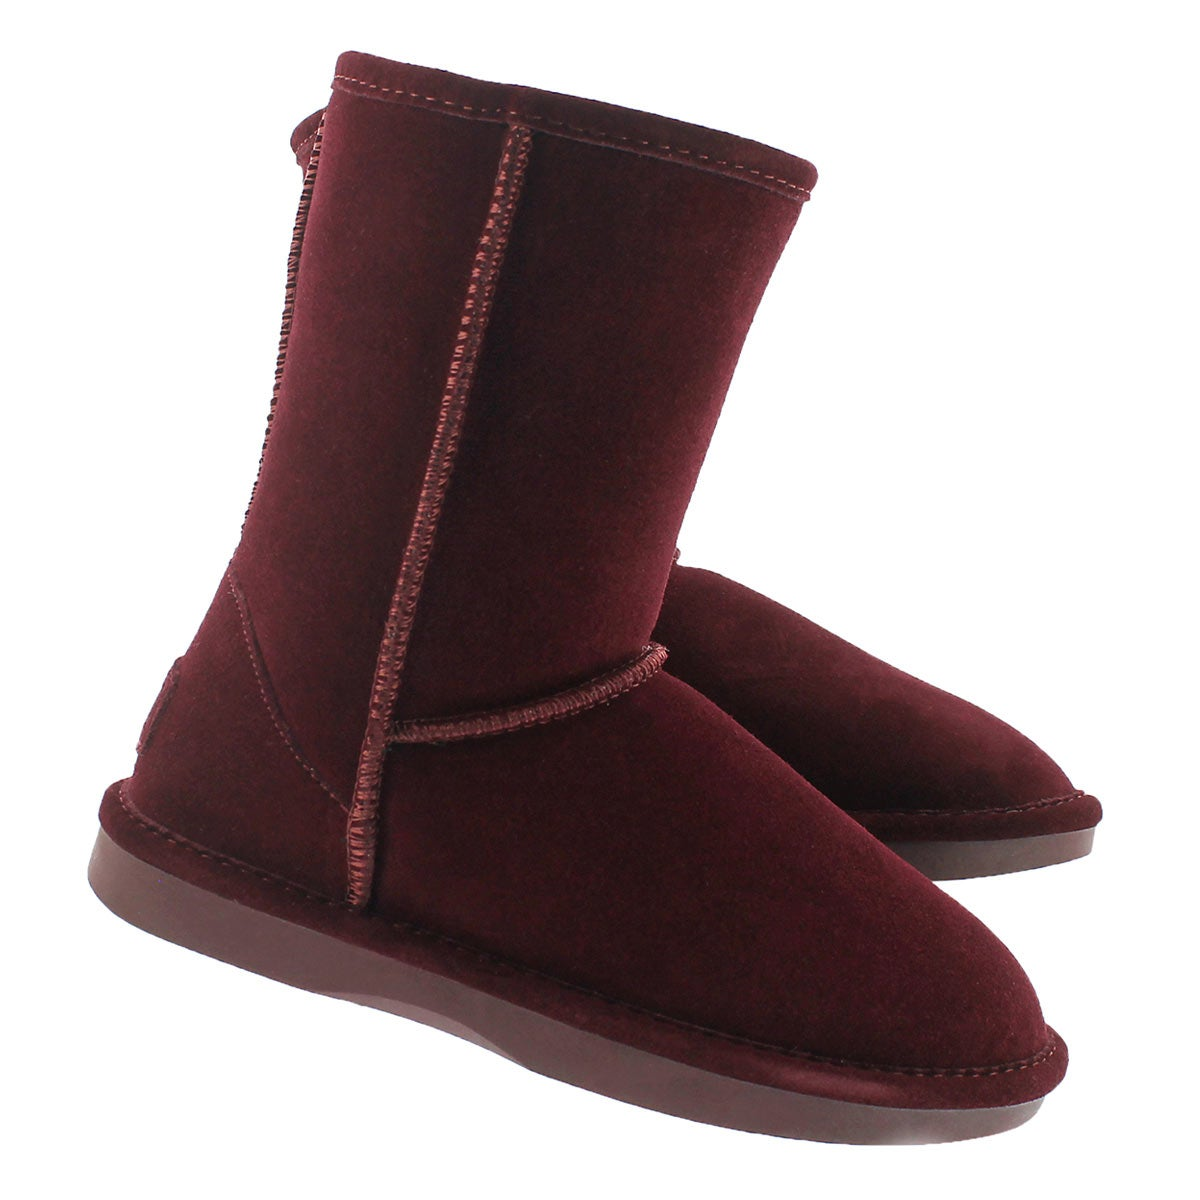 Lds Smocs 5 burgundy mid suede boot